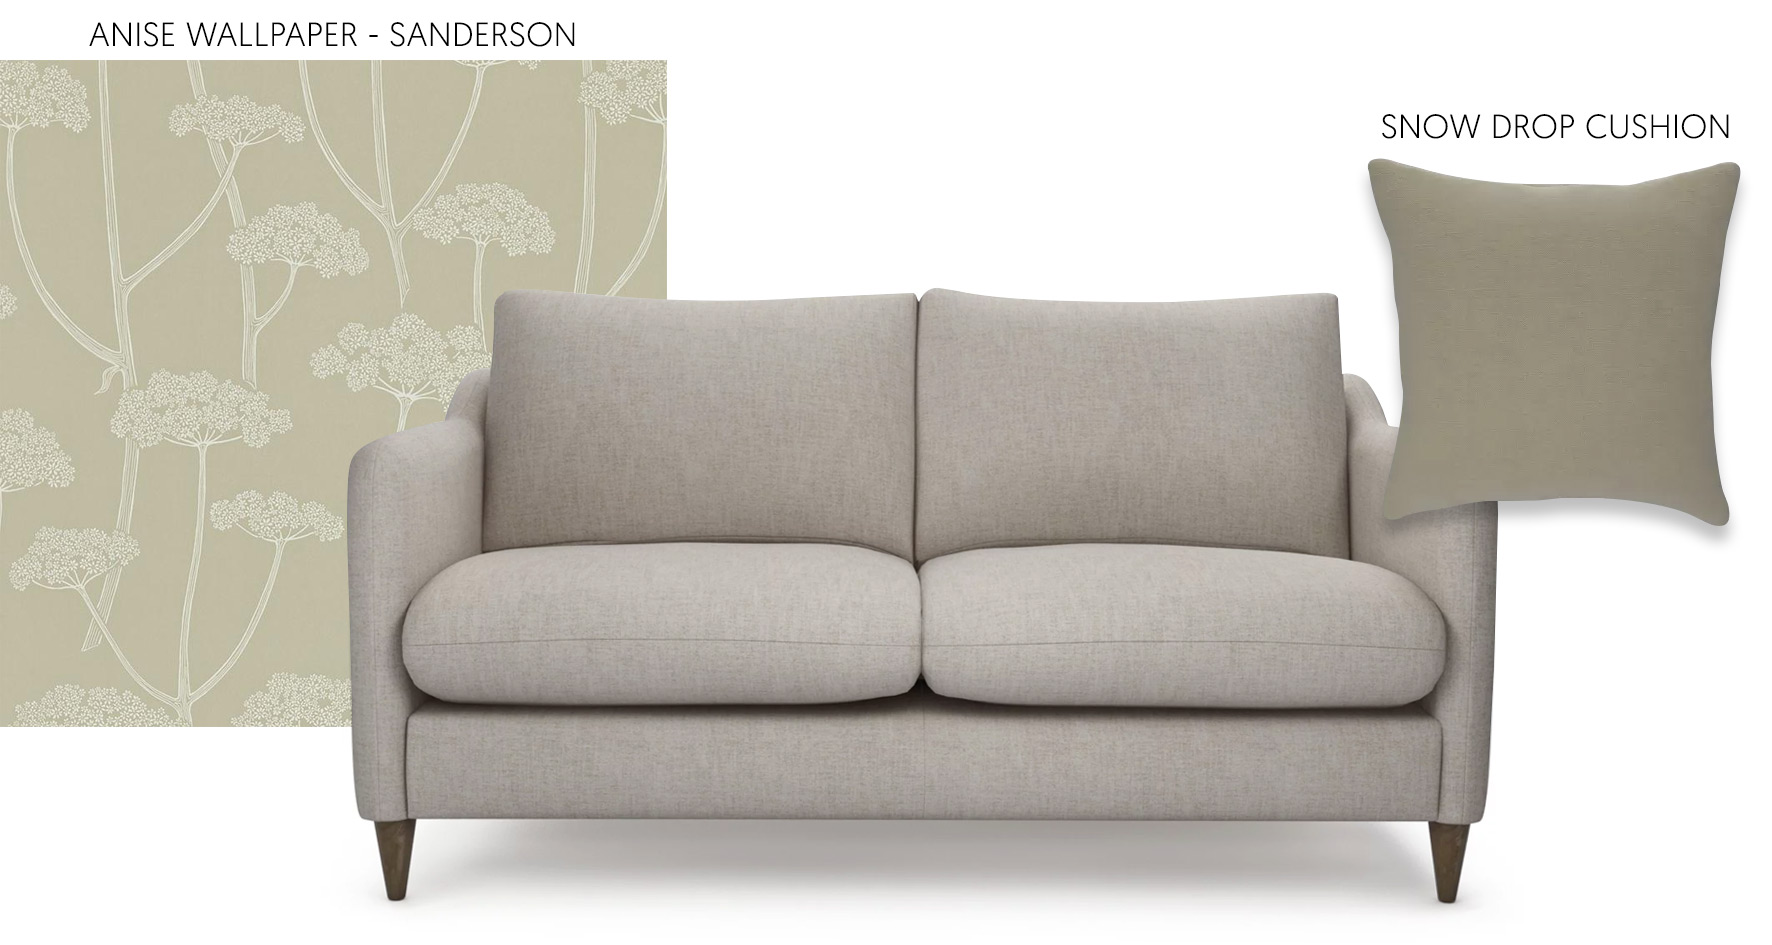 Accessorising a neutral sofa with Sanderson Wallpaper